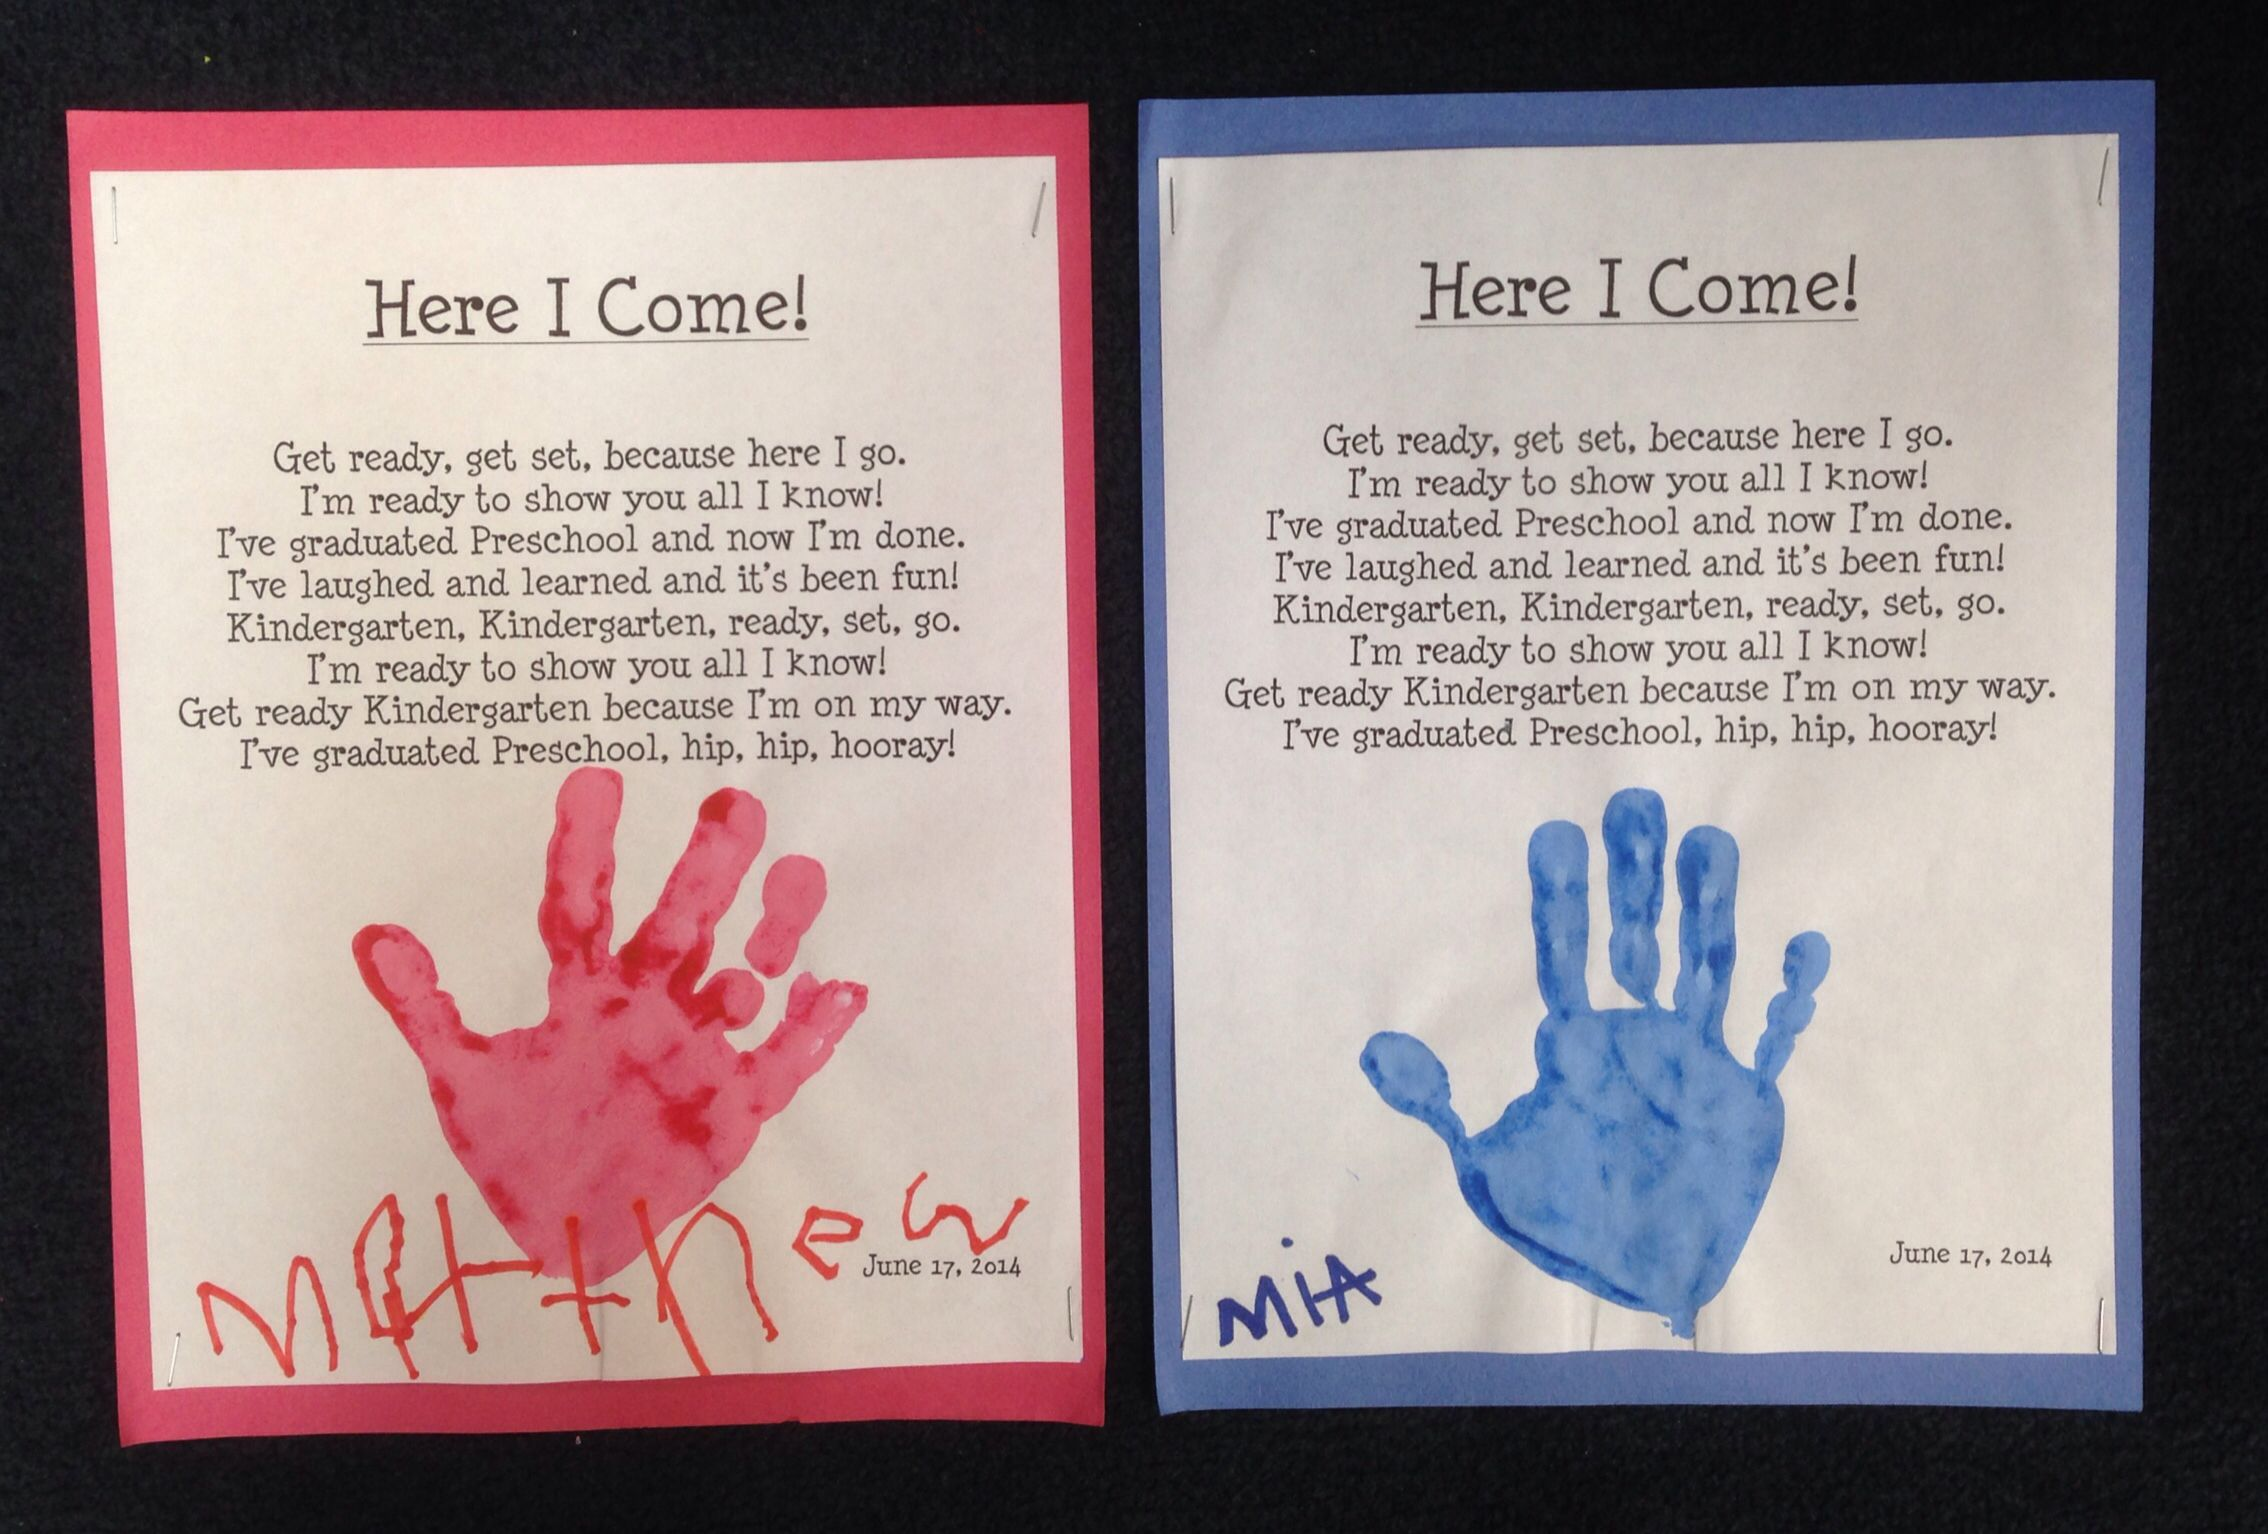 Here I Come Pre K Graduation Poem With Handprint Graduation Poems Preschool Graduation Pre K Graduation